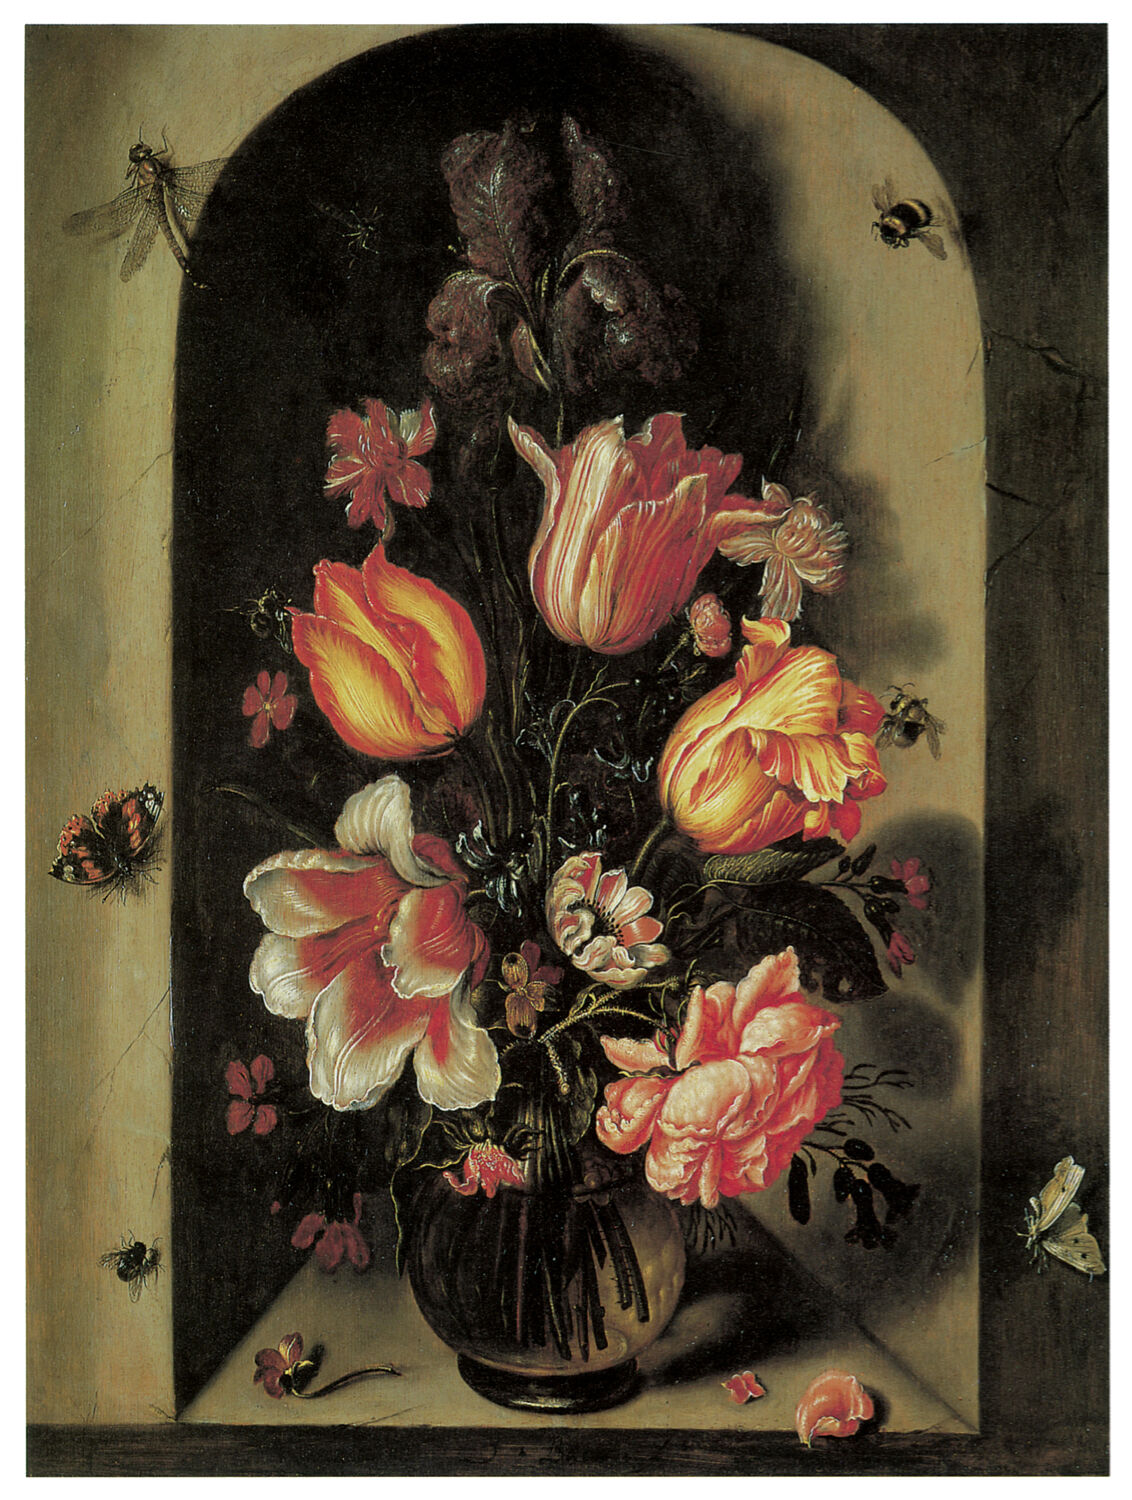 1160.Bees & butterflies Floral Art Decor POSTER.Graphics to decorate home office